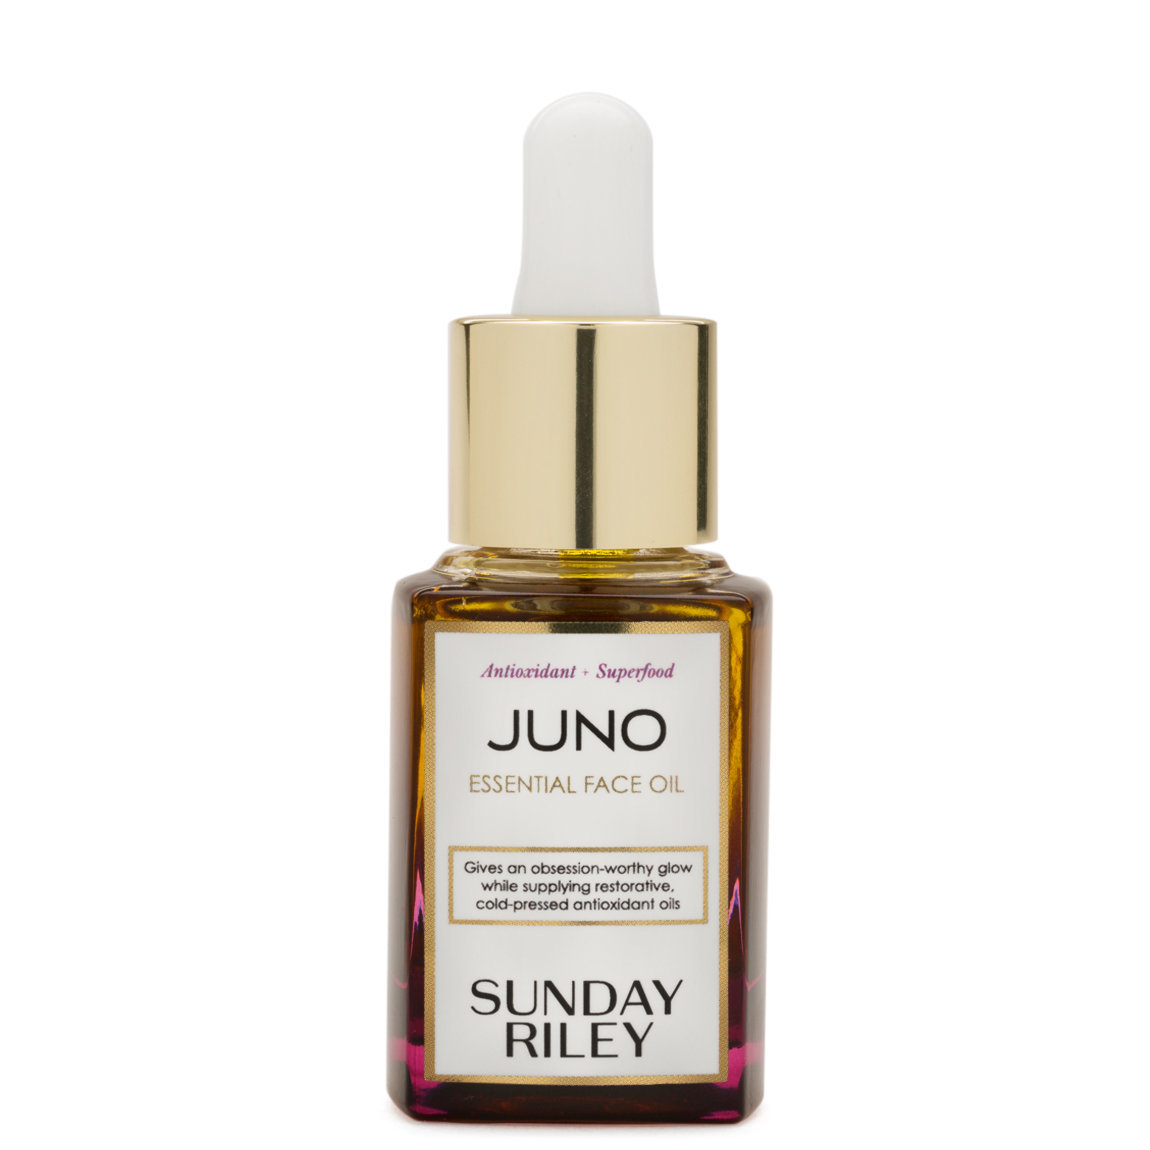 Sunday Riley Juno Antioxidant + Superfood Face Oil 15 ml product smear.